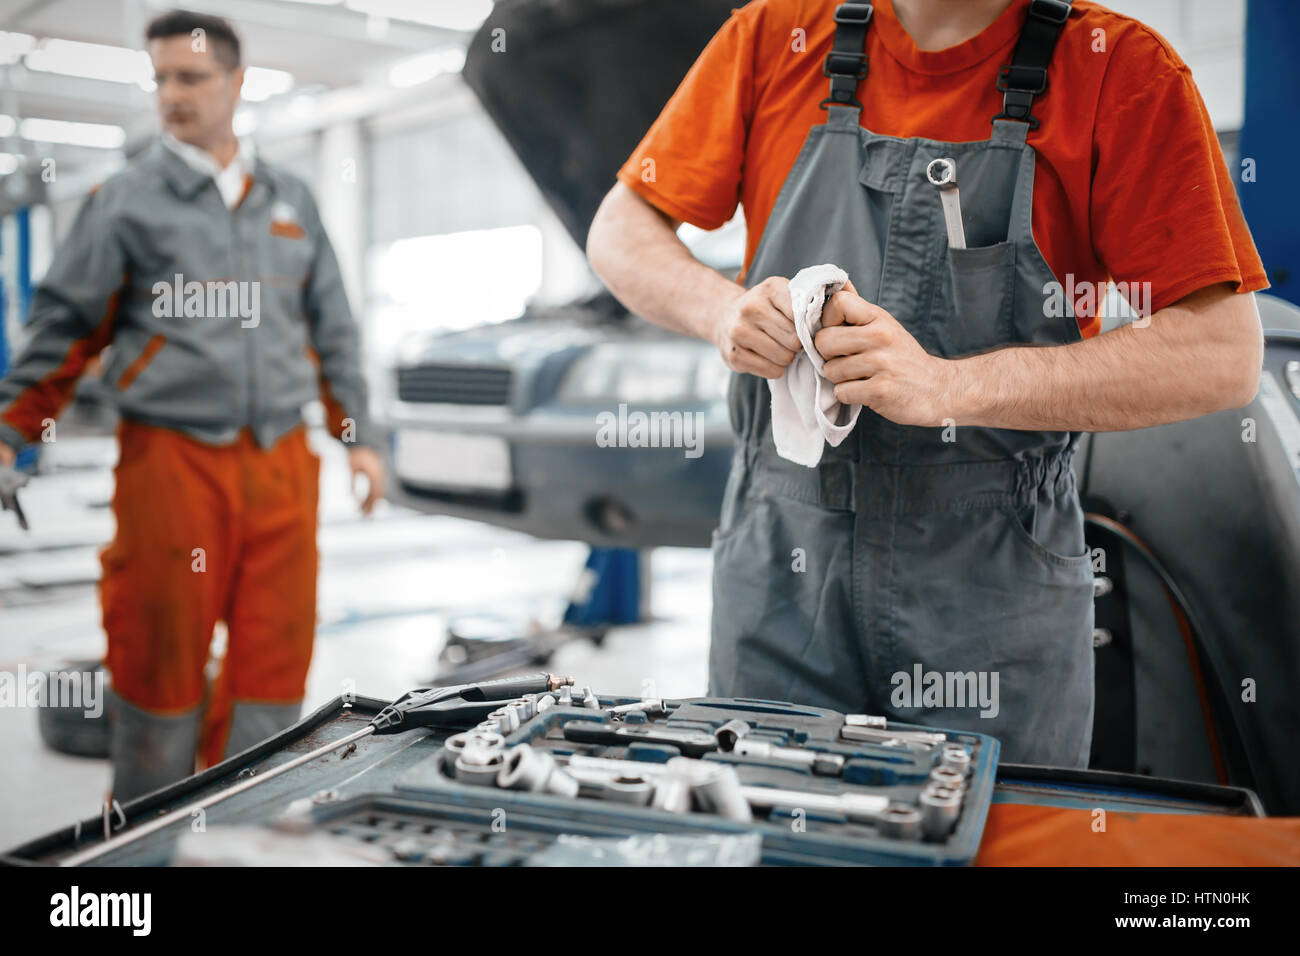 Car mechanic keeping tools polished and clean - Stock Image